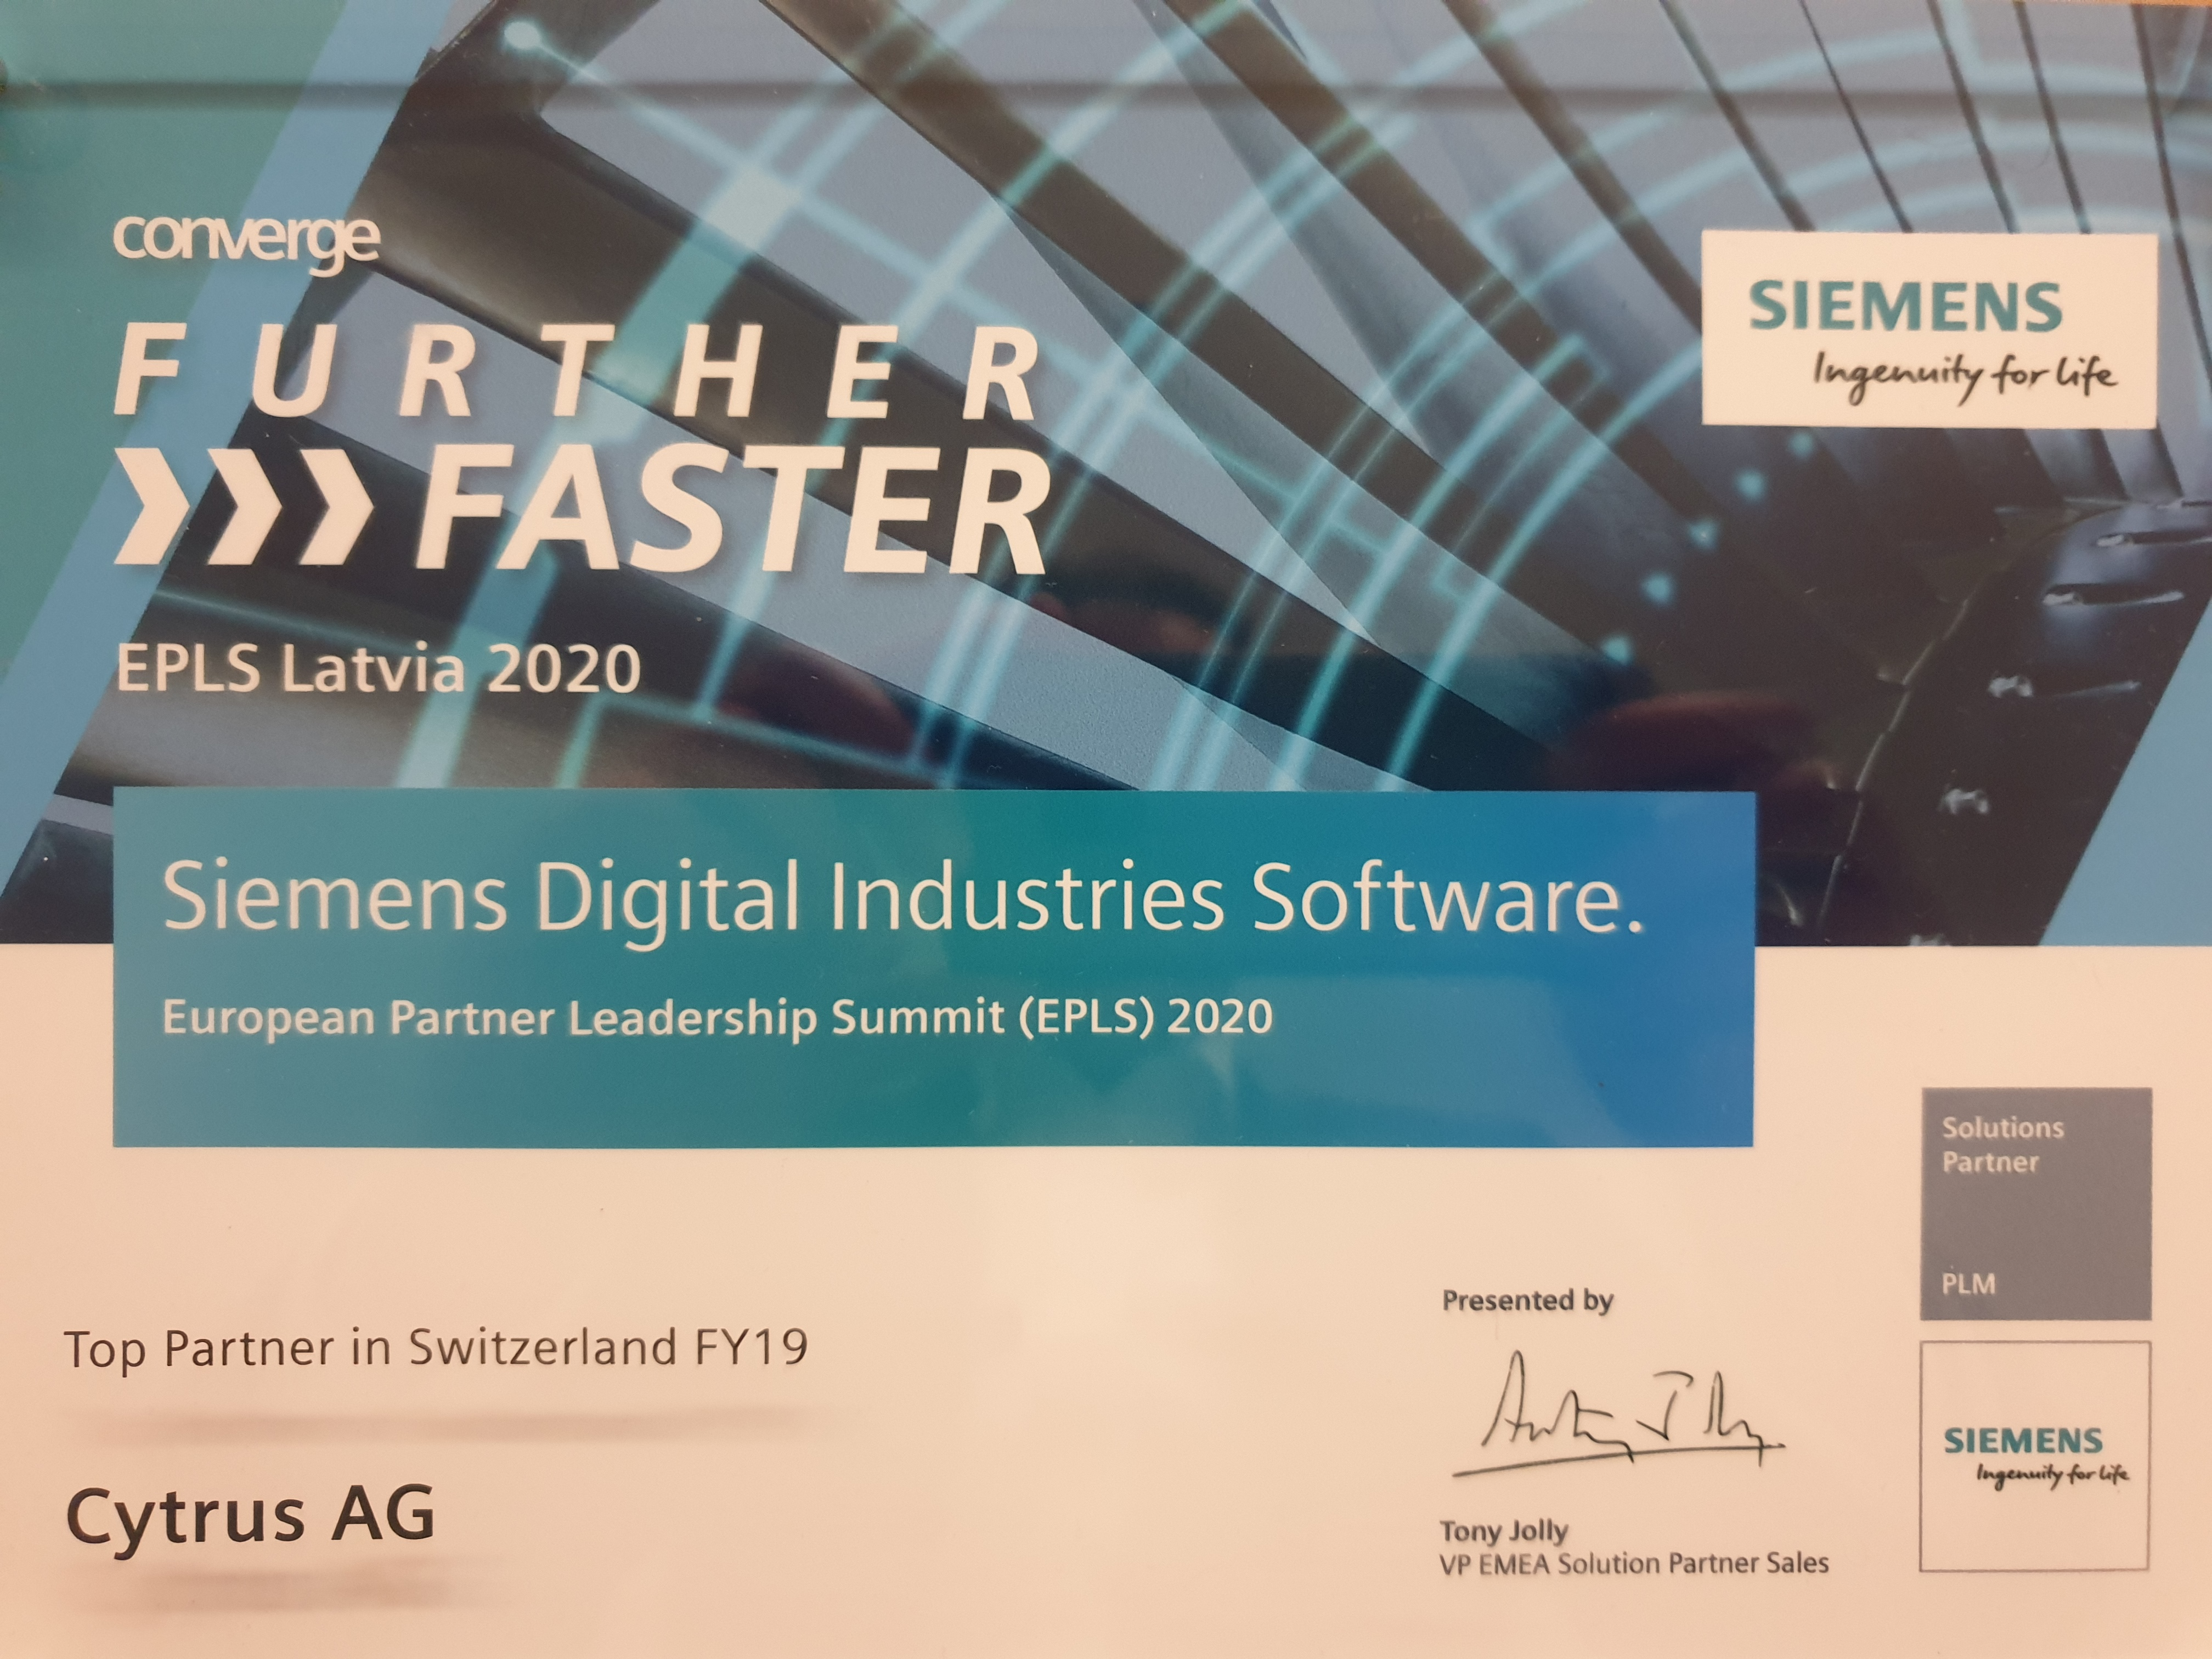 Siemens Awards Top Partner in Switzerland | Cytrus Ag | Freshness in PLM